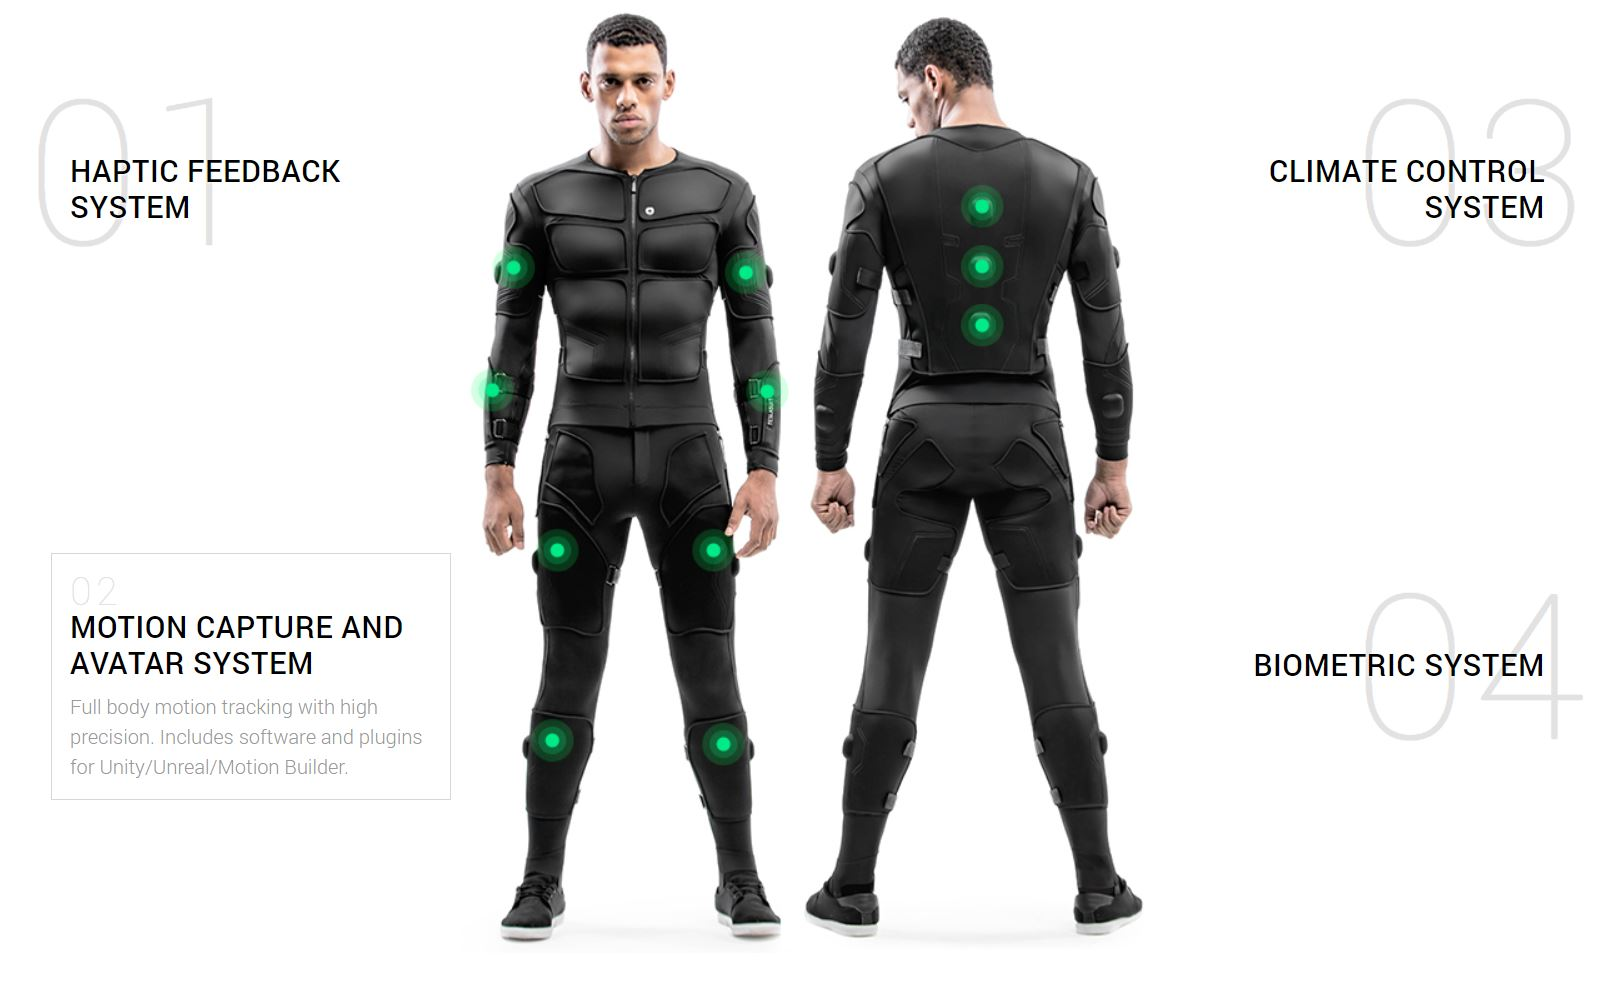 Teslasuit - A Wearable Smart Suit With Applications Beyond